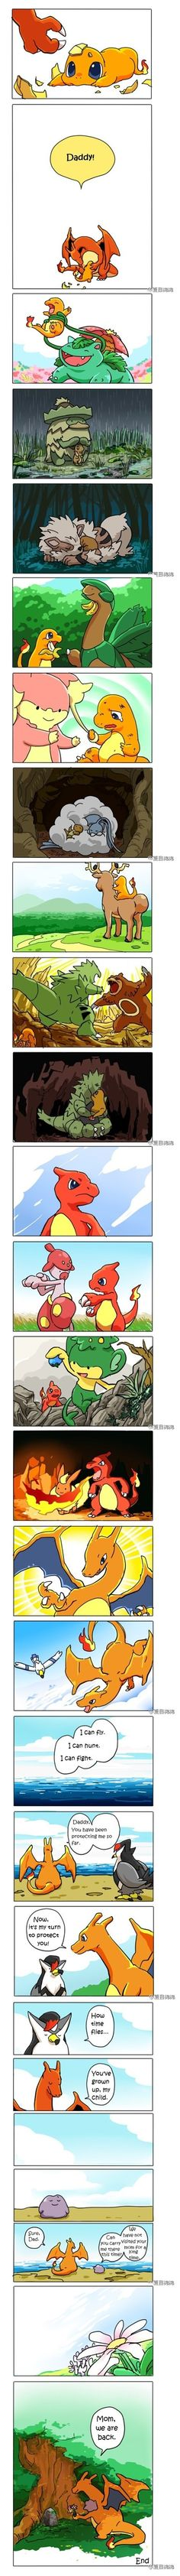 It's so sad at the end! And it makes sense that the Charmander's father is a Ditto because it was all these different Pokemon!